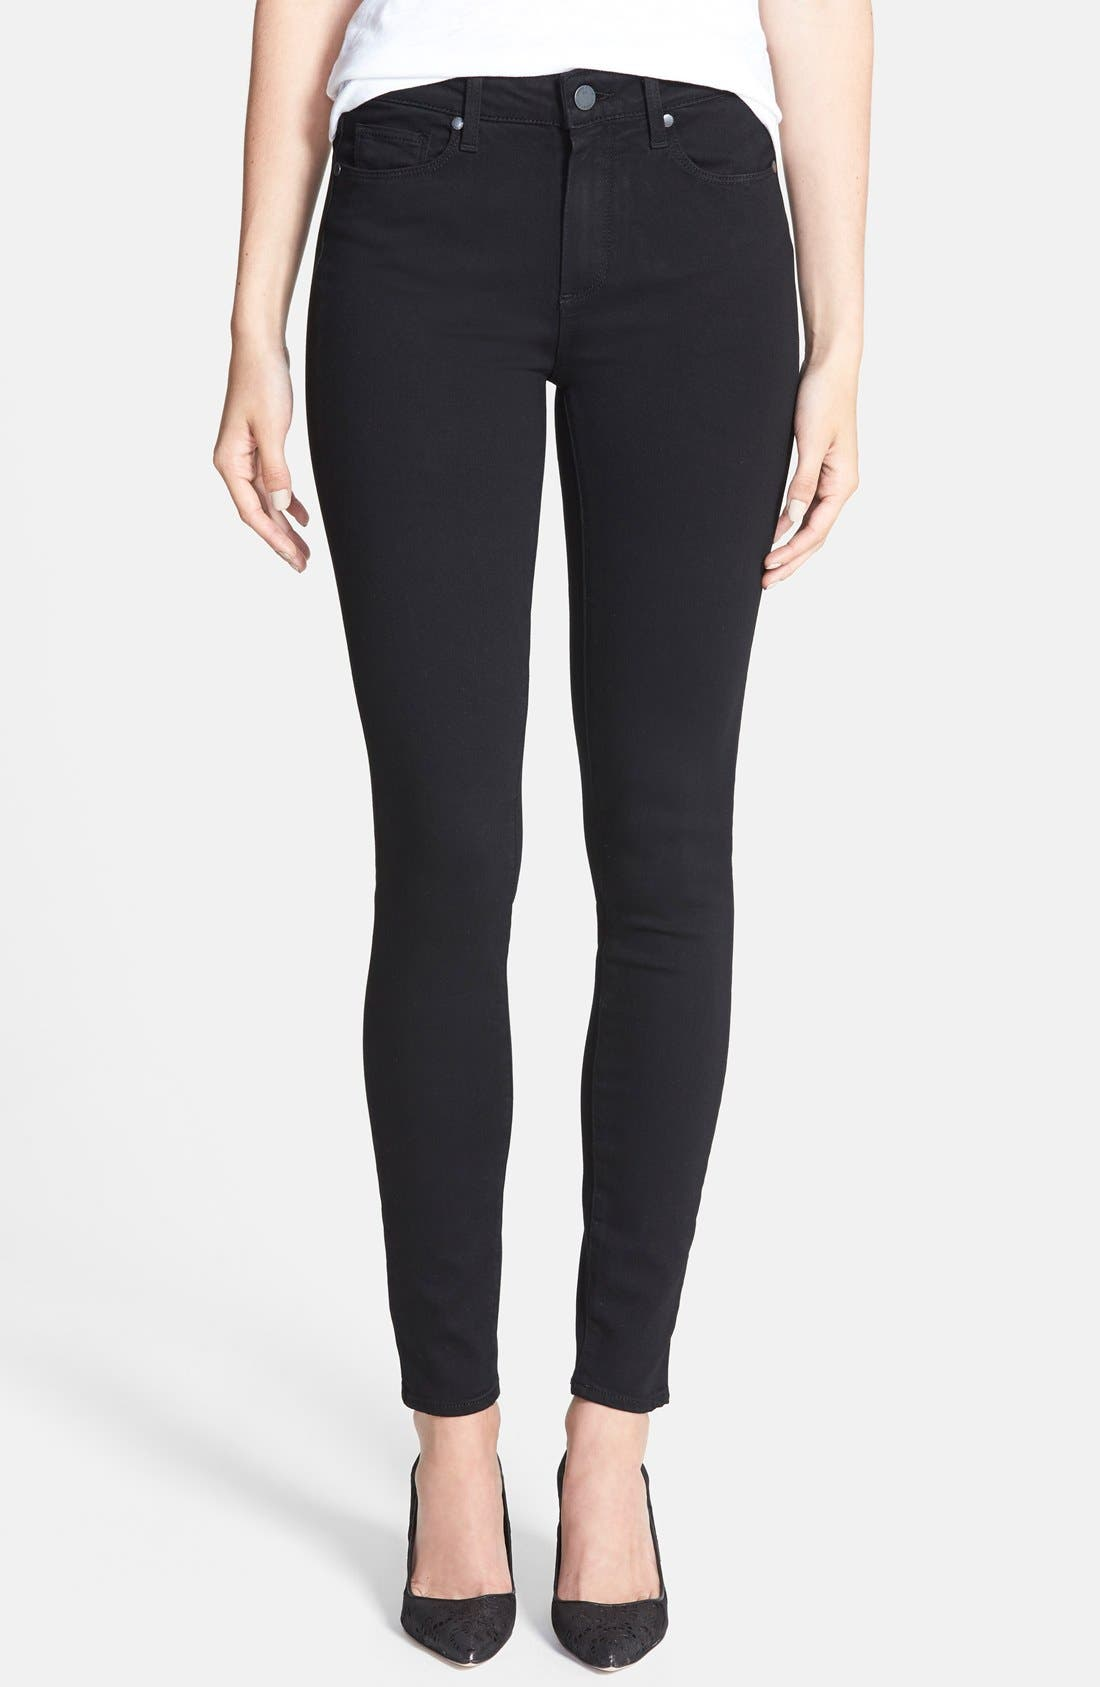 Transcend - Hoxton High Waist Ultra Skinny Stretch Jeans,                         Main,                         color, Black Shadow